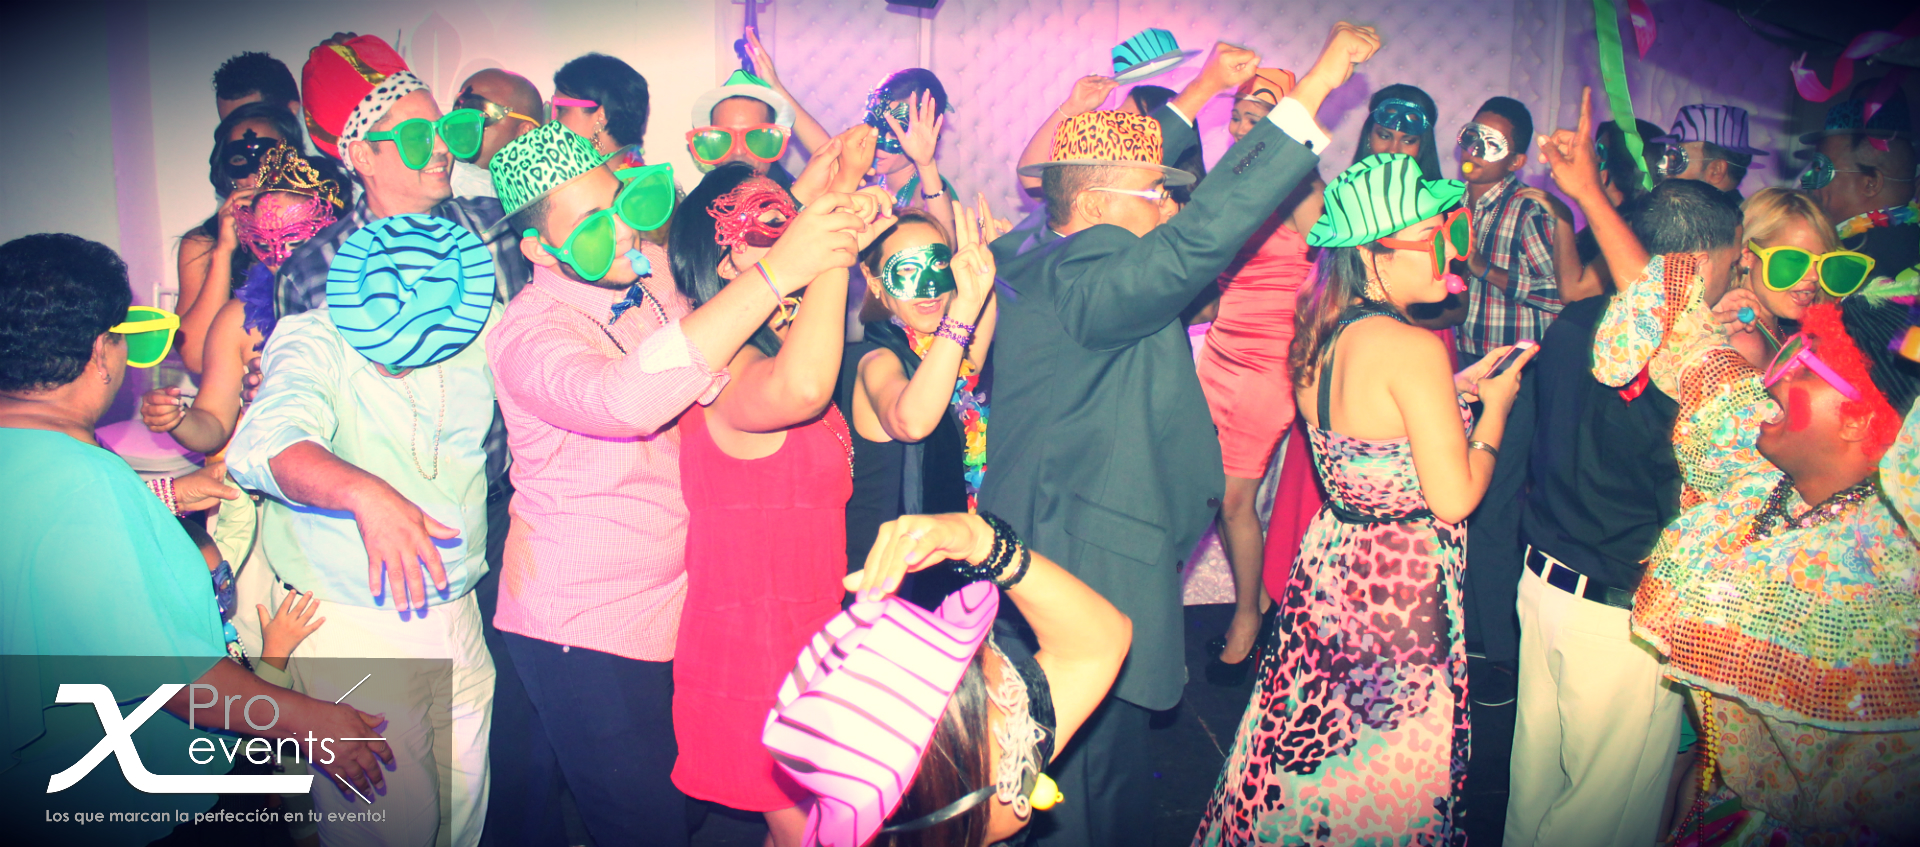 www.Xproevents.com - Party all night long.JPG